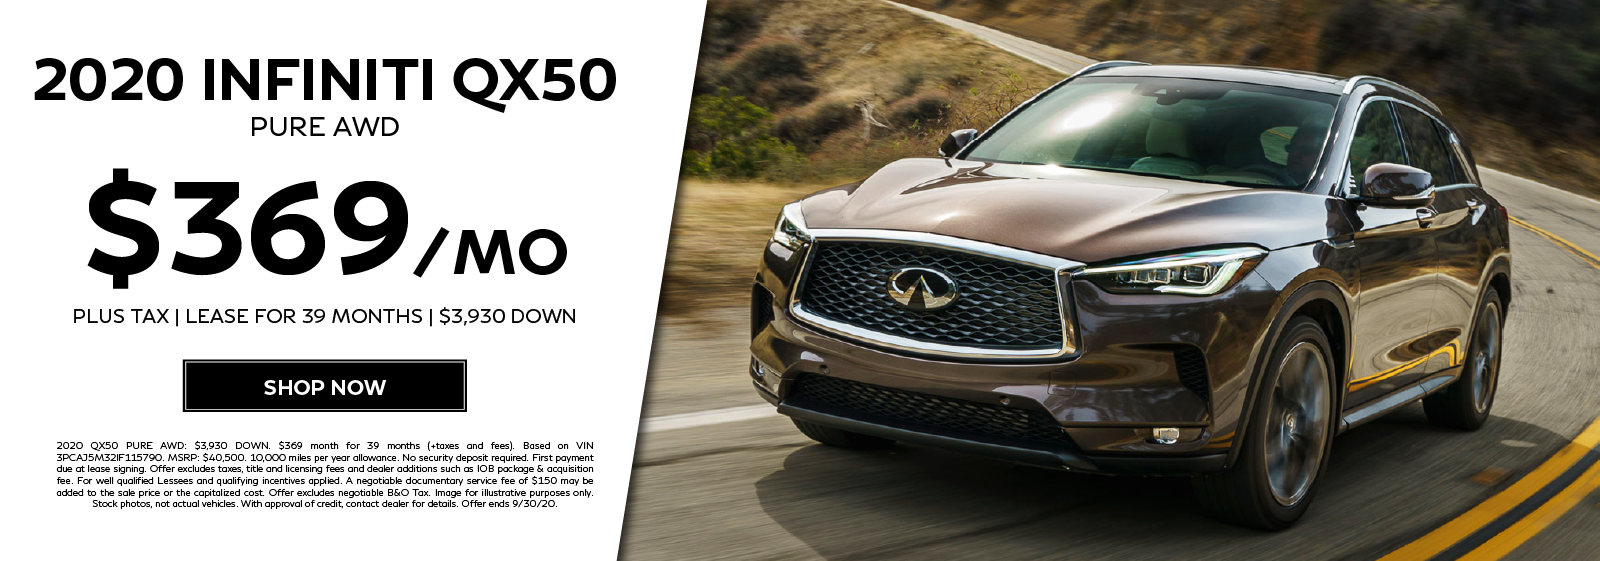 Lease a 2020 QX50 PURE AWD for $369 per month for 39 months. Click to shop now.